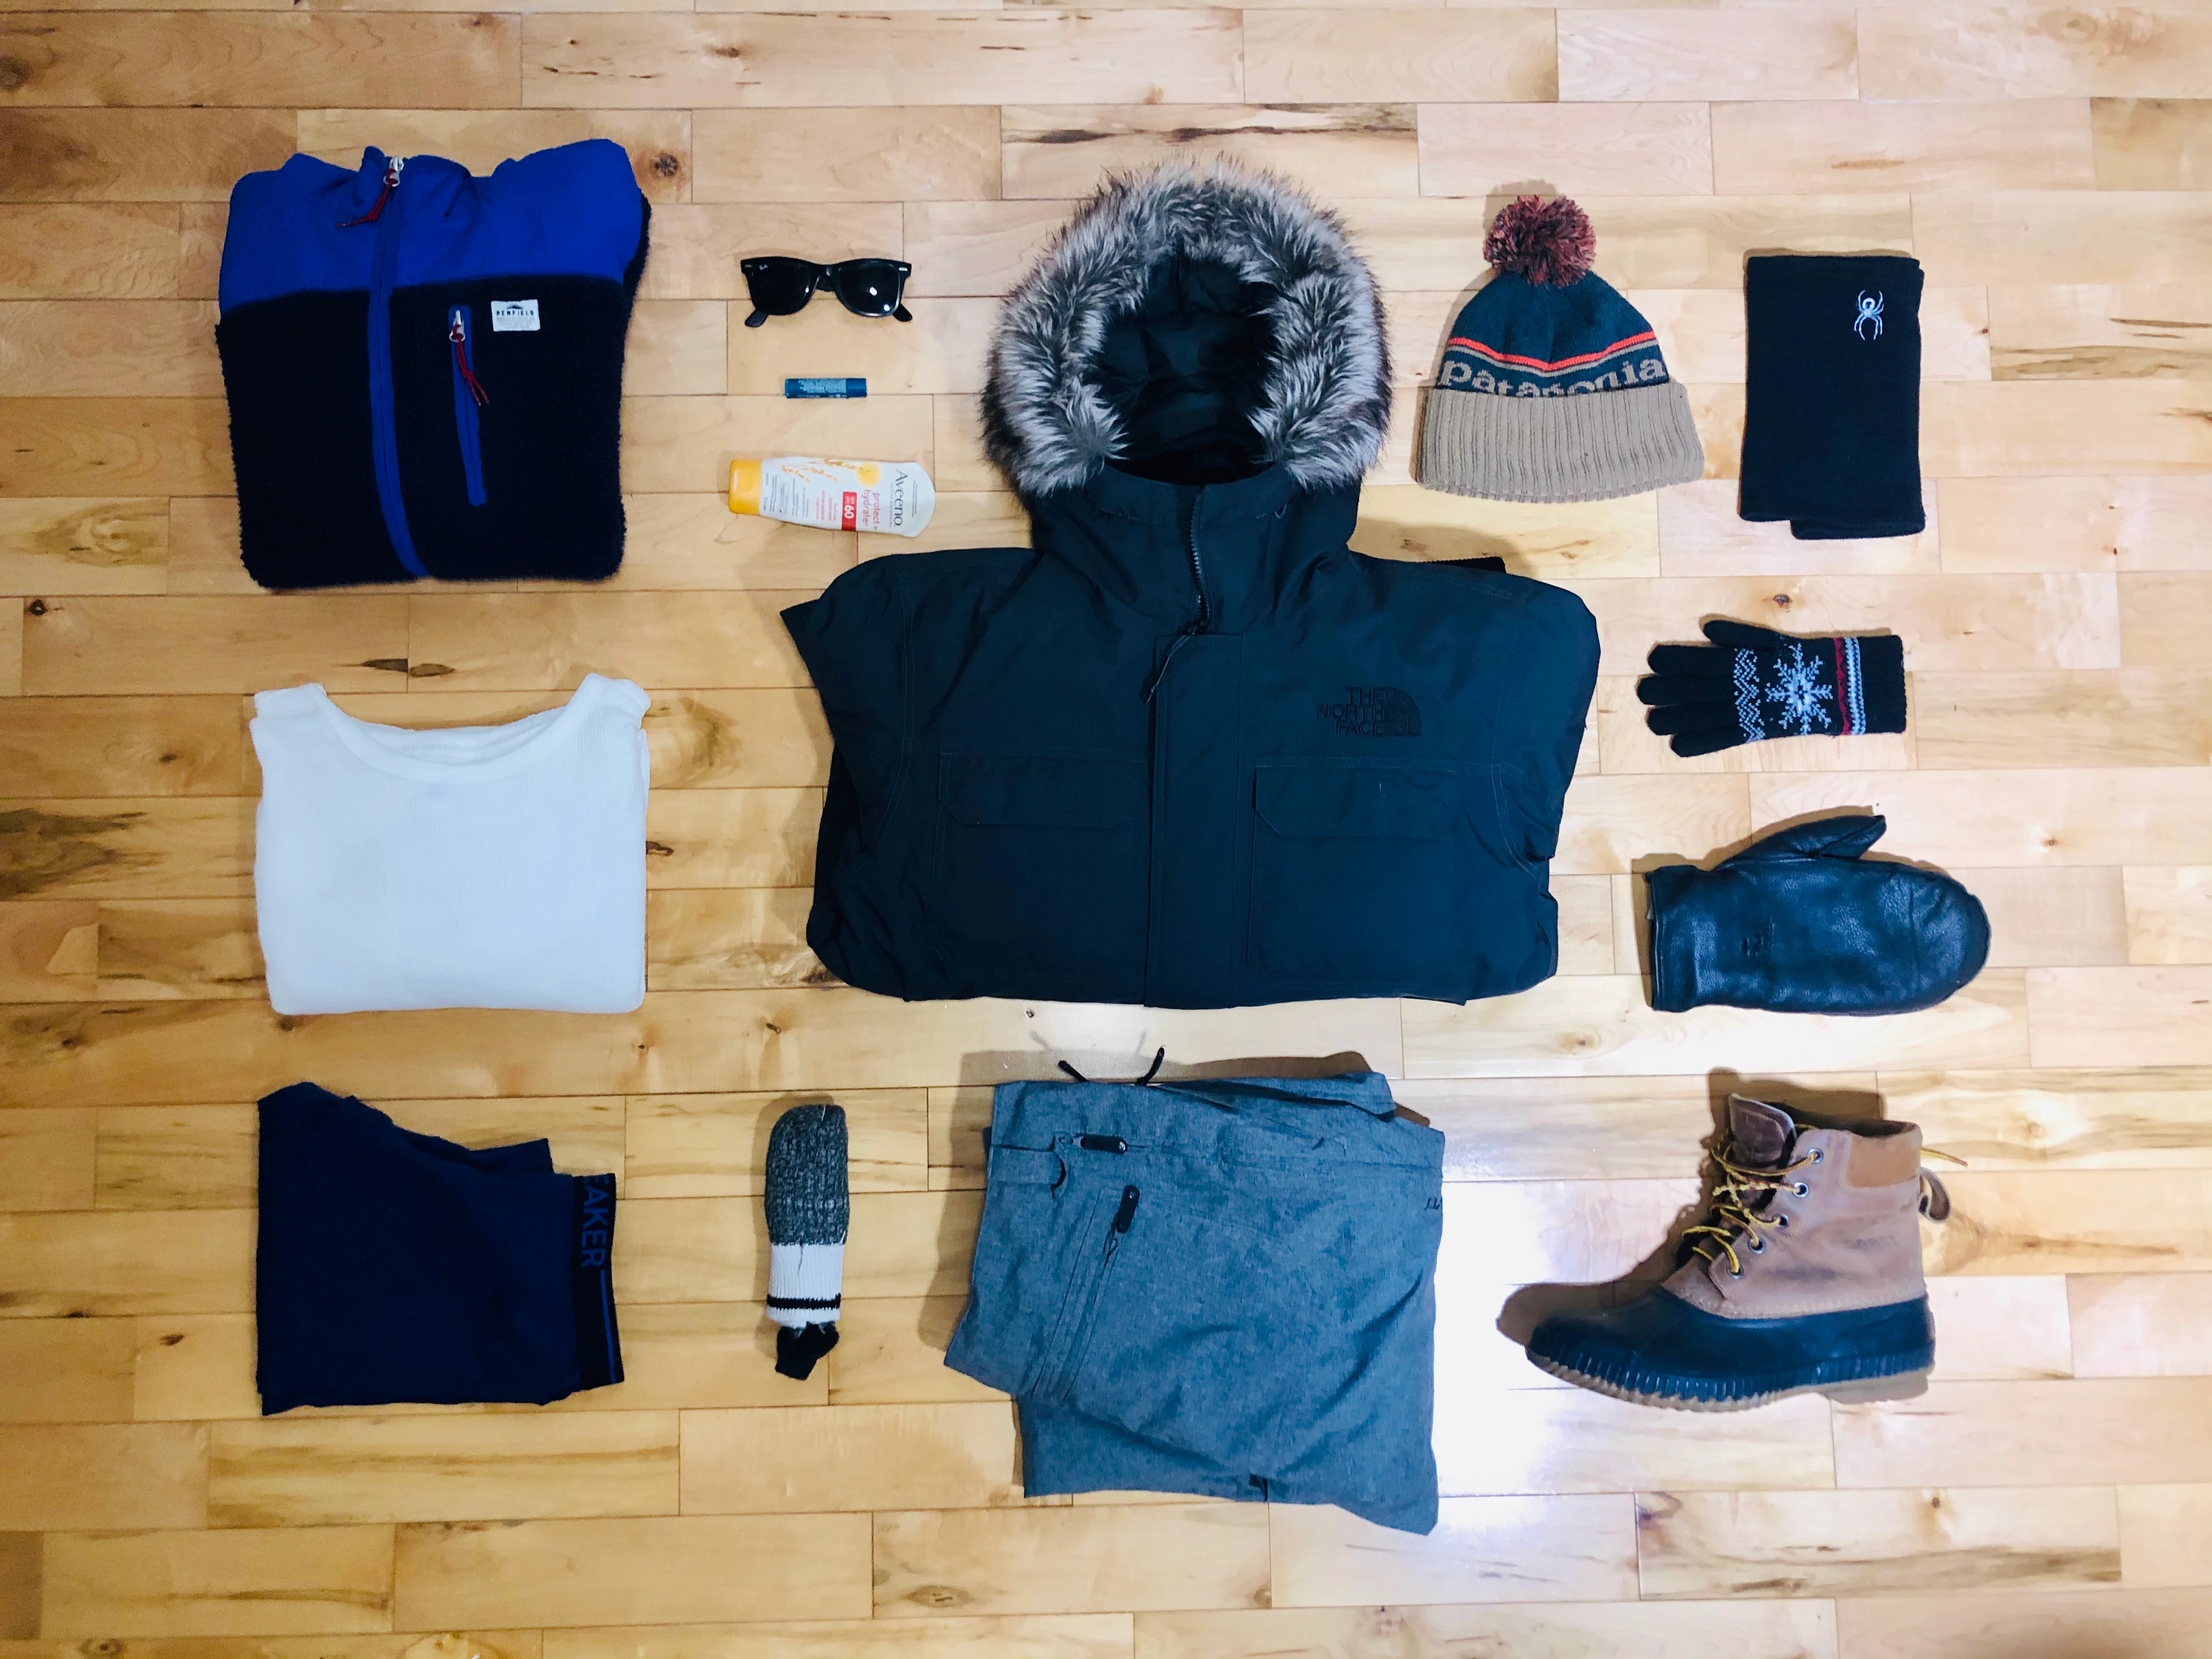 Winter clothing to make the most of your winter trip!